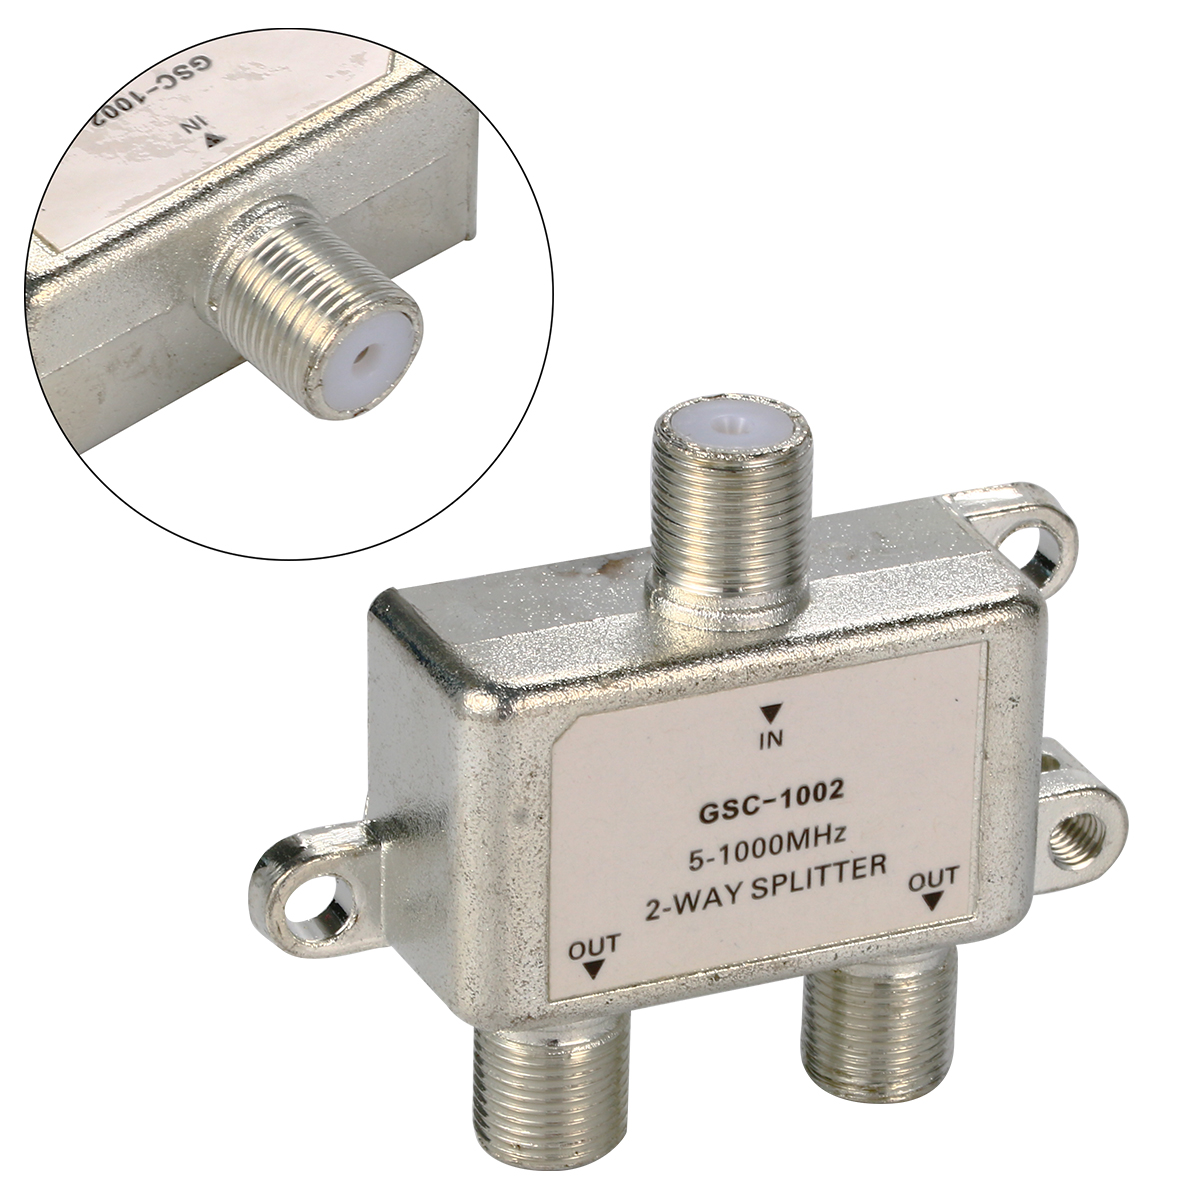 2 Way 5-1000 MHz Signal Coaxial F Connector Splitter Cable TV Switch BI126(China (Mainland))